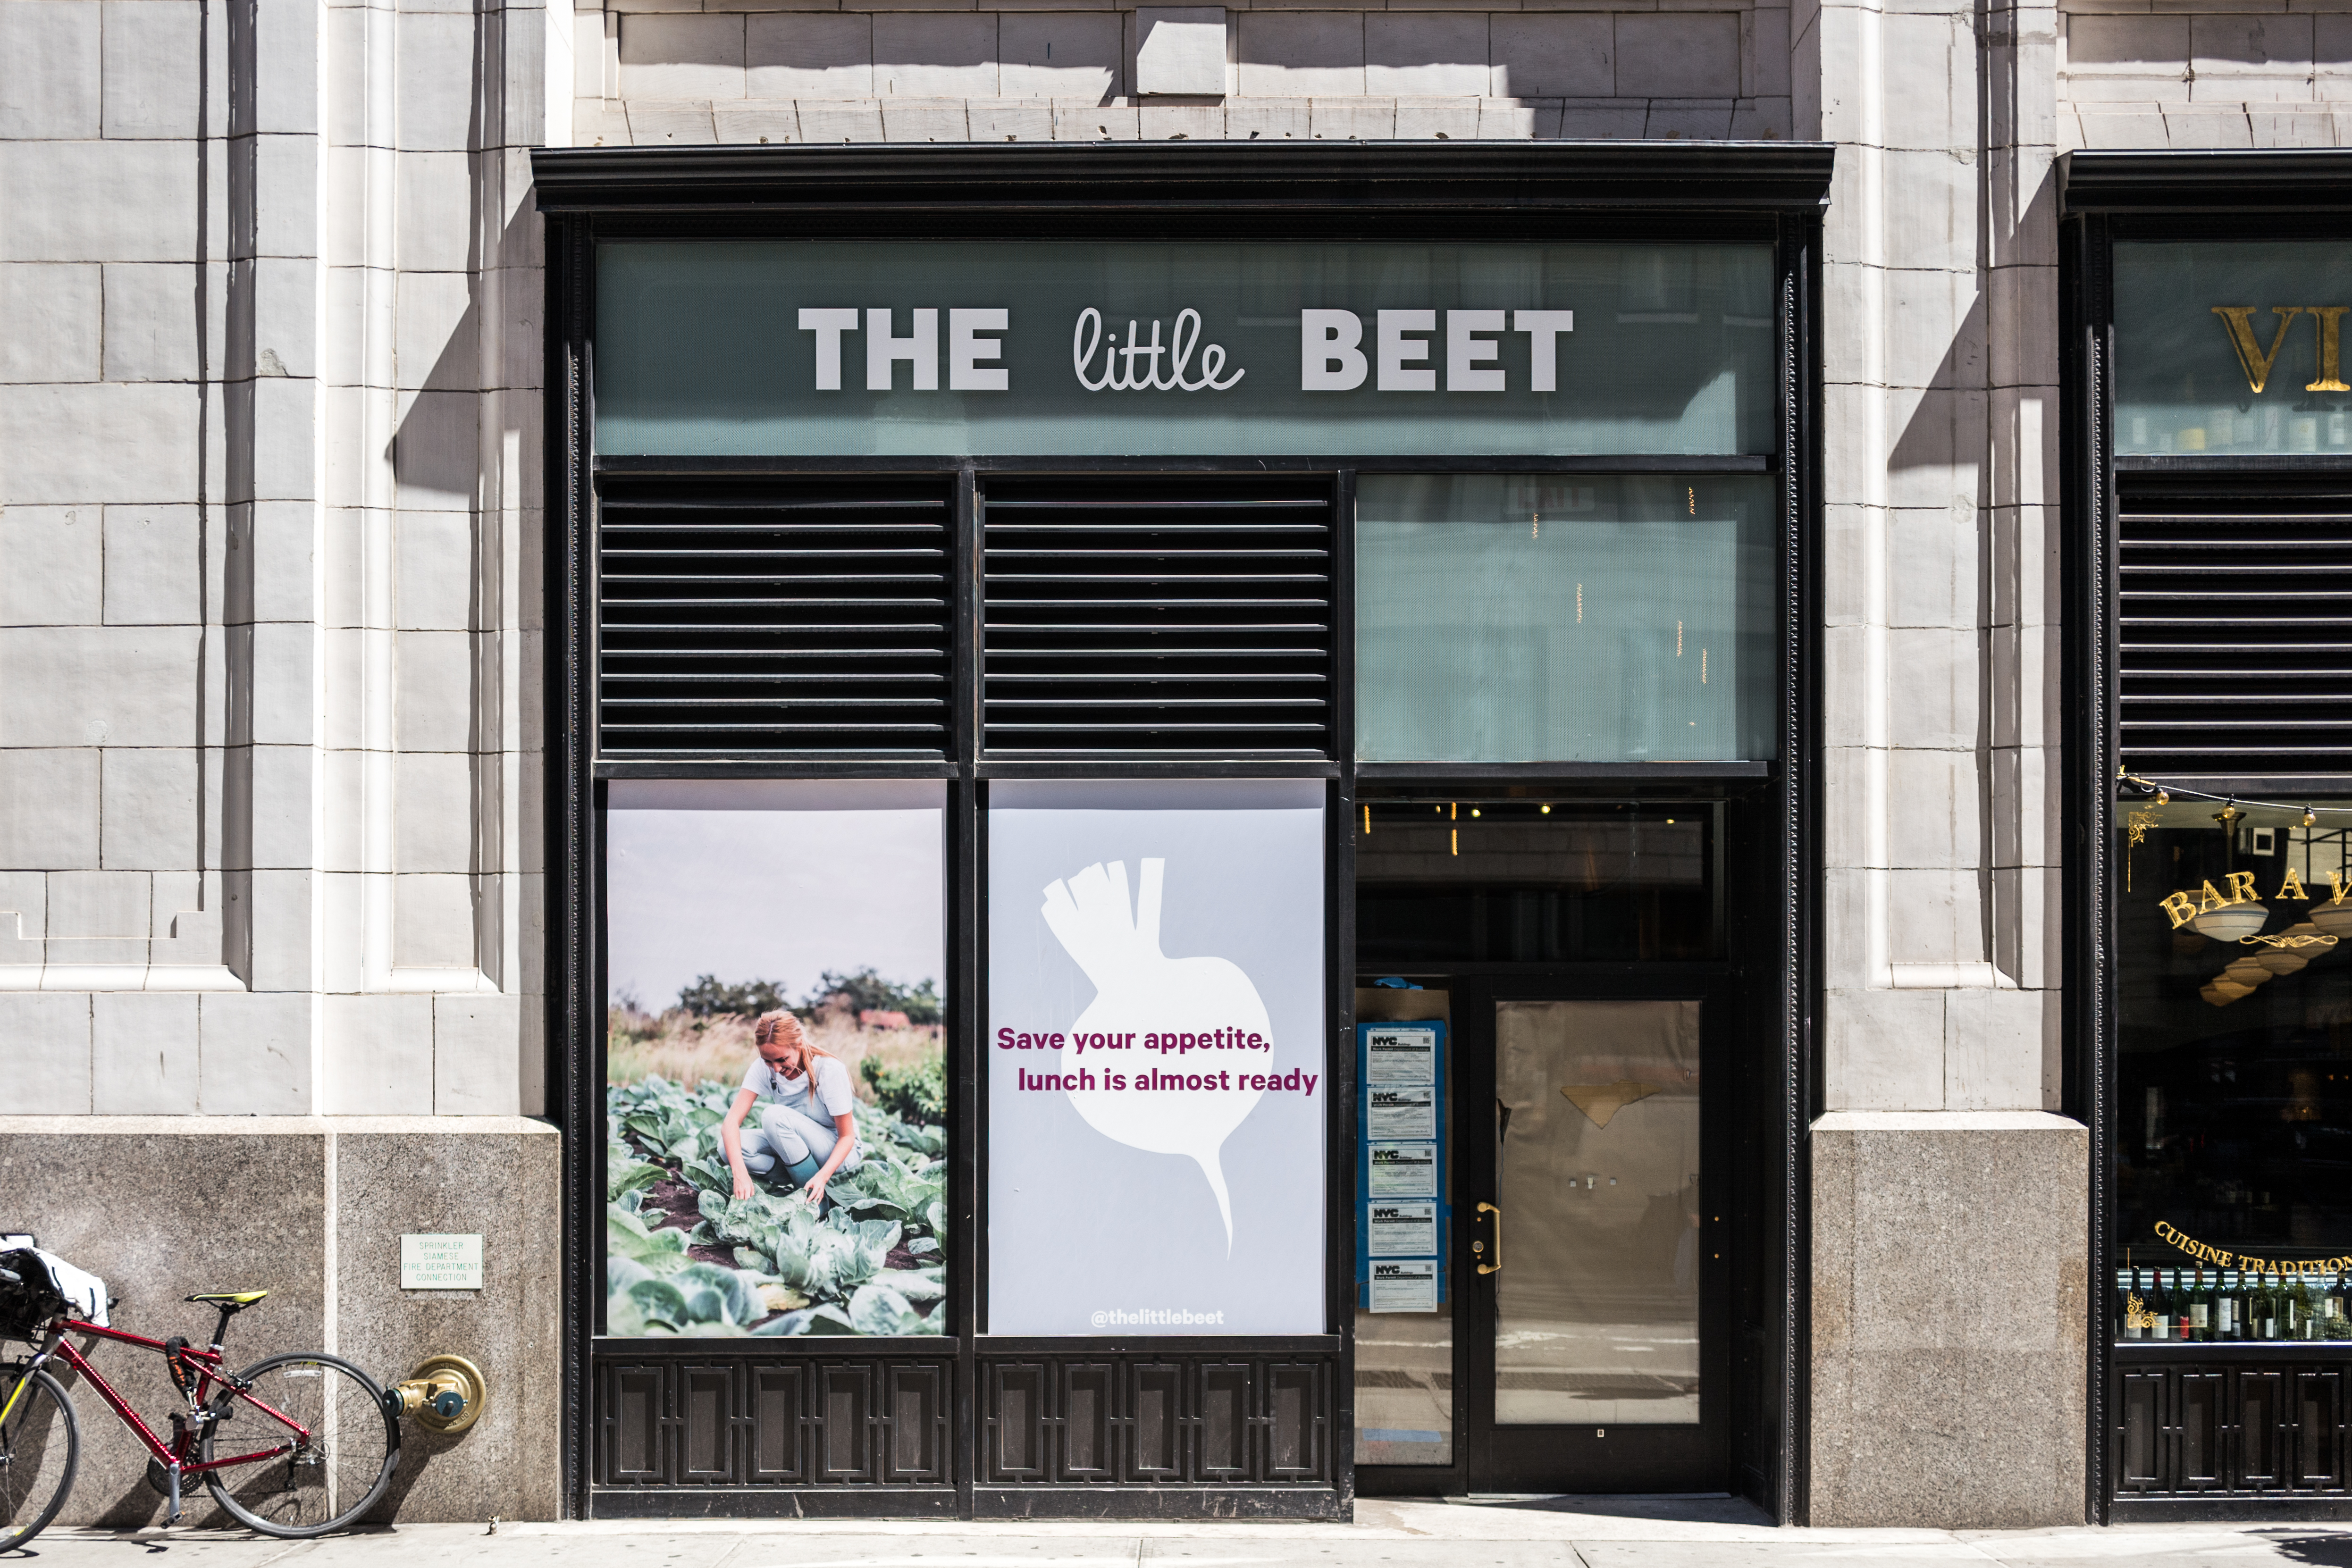 Franklin Becker's The Little Beet is opening soon on Broadway in the Flatiron District.